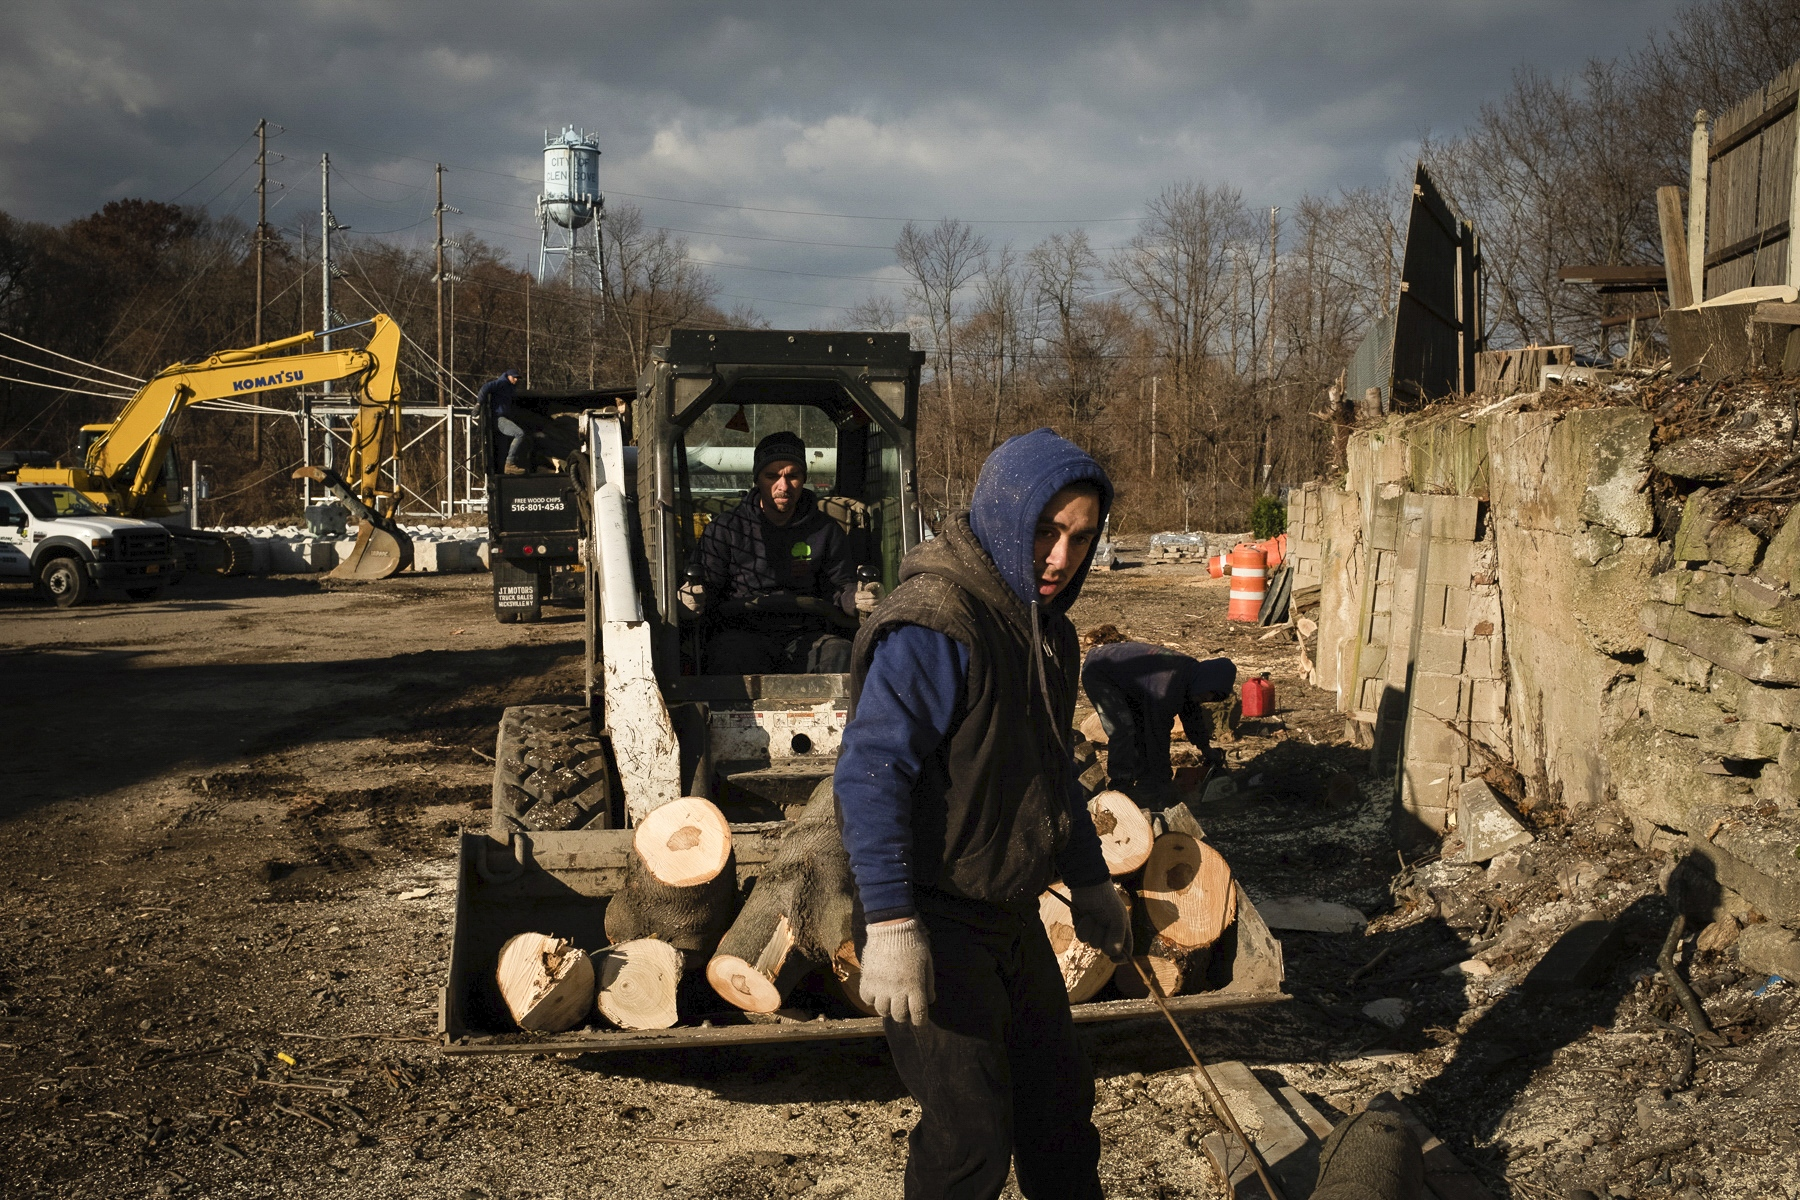 "Erik Villalobos and his father, Guillermo Villalobos, remove trees from a parking lot in Long Island, New York. Since graduating from college last summer, Erik has been helping his dad with the landscaping business he inherited from his own father. ""When I left home, I never thought I would be cutting down trees,"" Guillermo Villalobos said. ""I came to do what I learned as a child."""